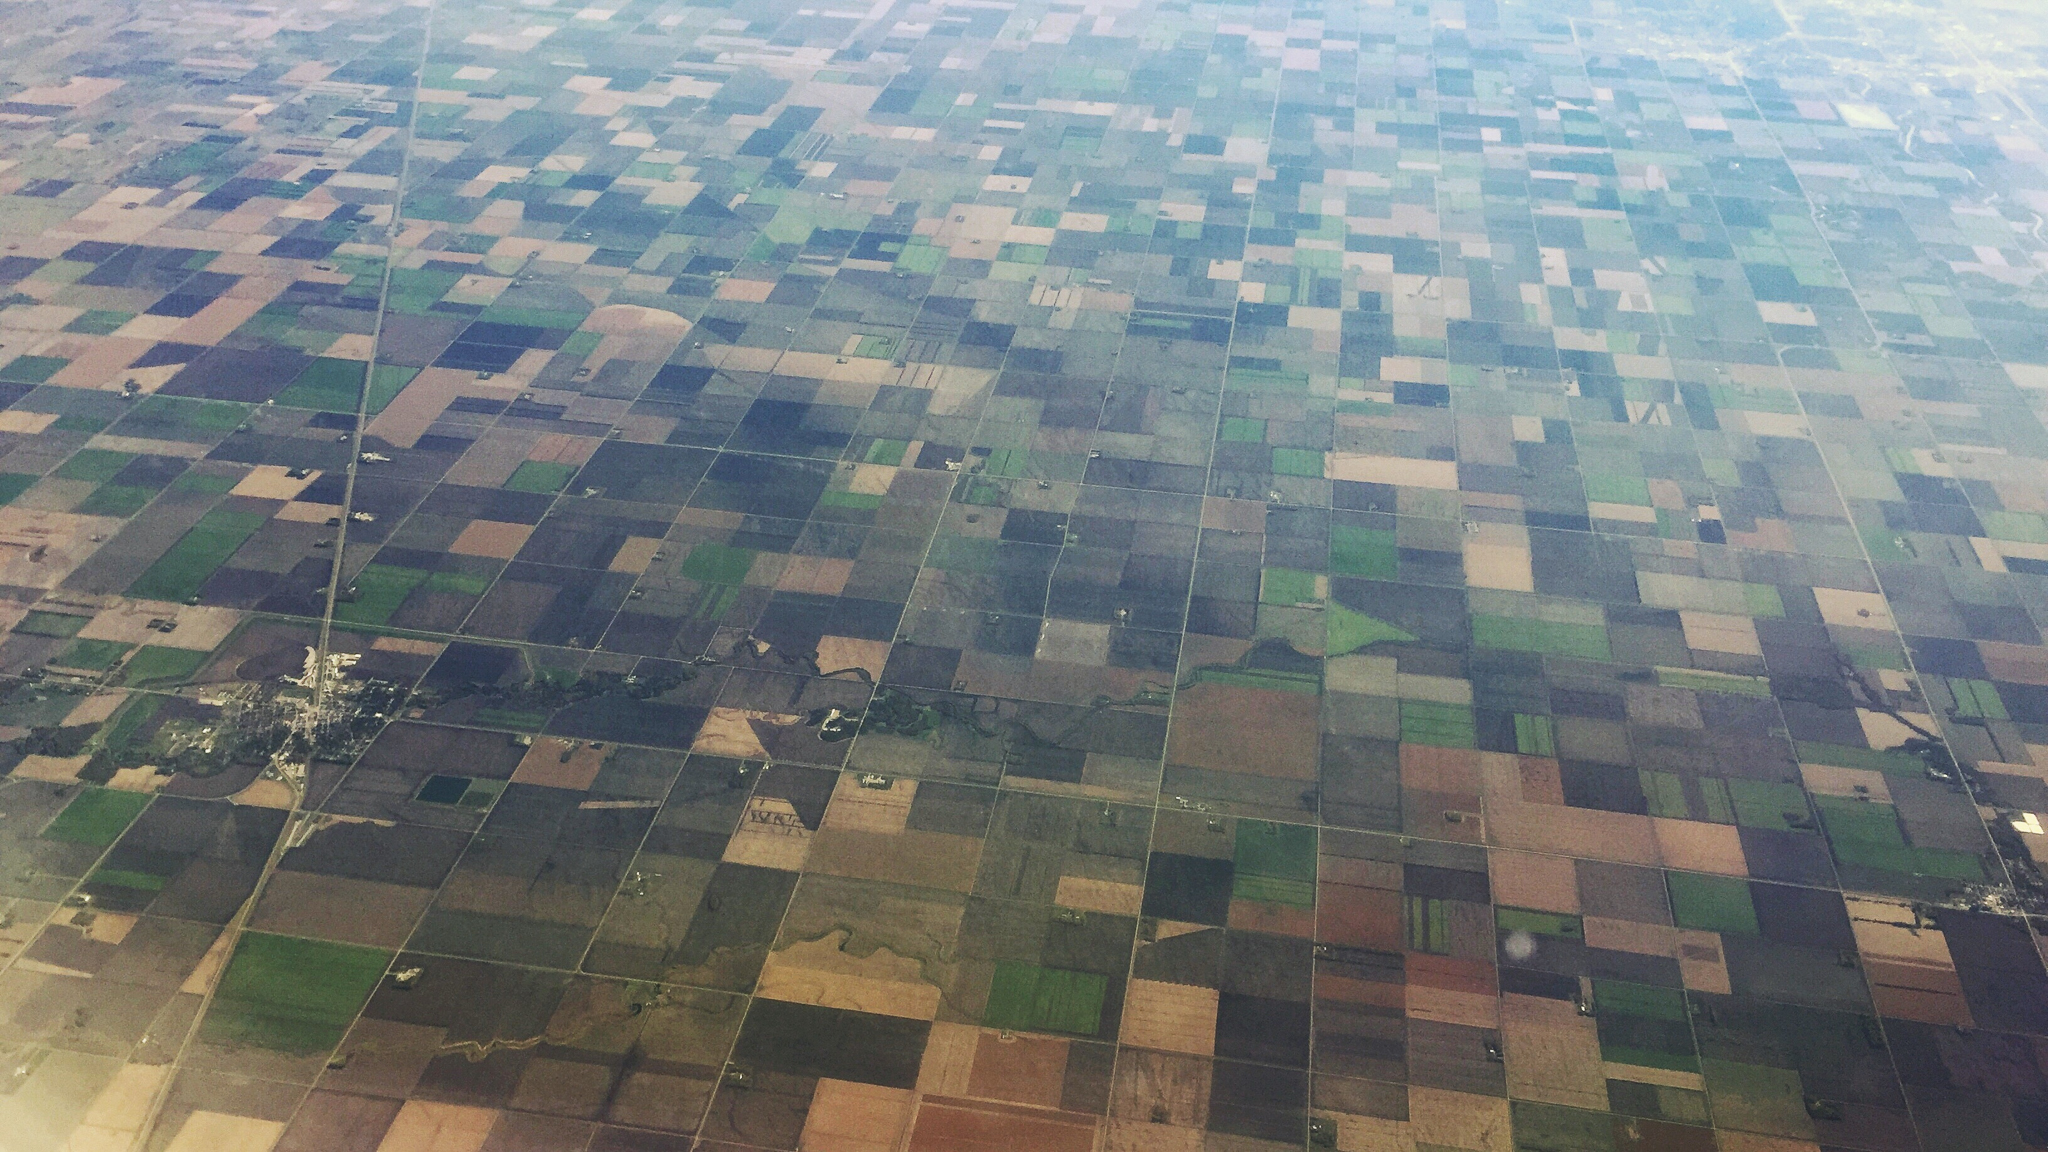 Aerial view of crops. Photo by Robert Kneschke.